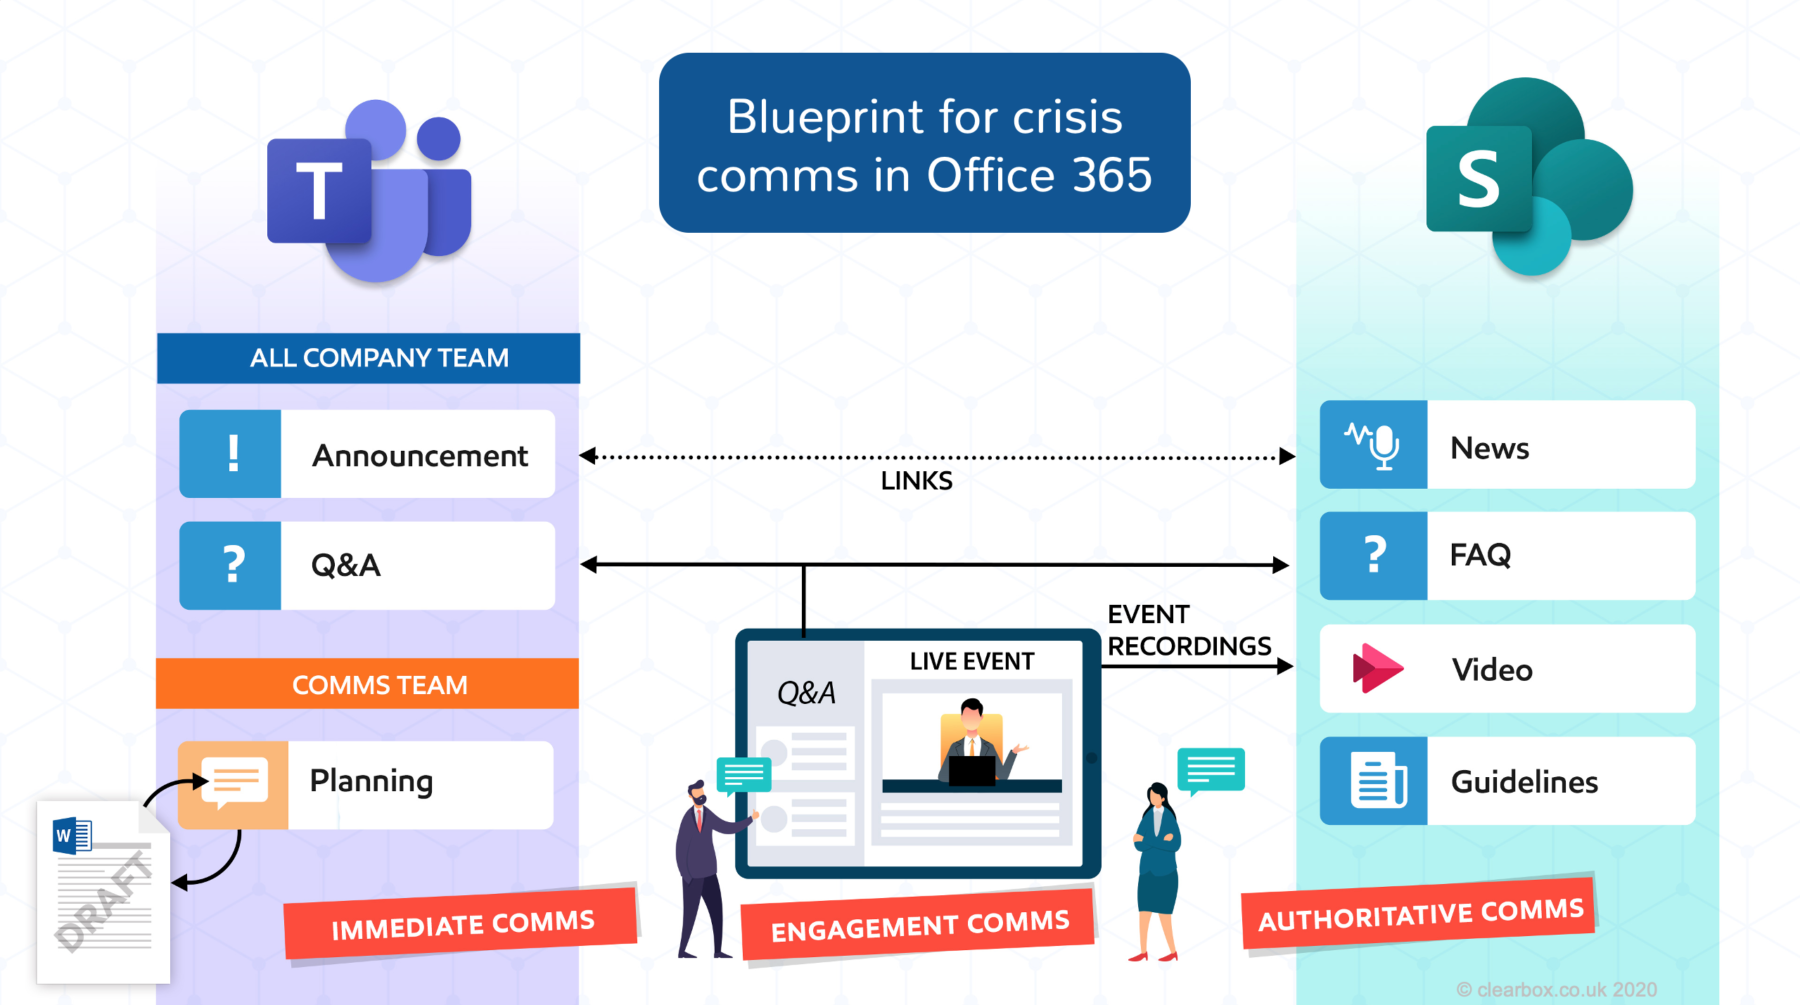 Crisis comms blueprint for Office 365 graphic, showing channels for immediate comms, engagement comms, and authoratative comms.